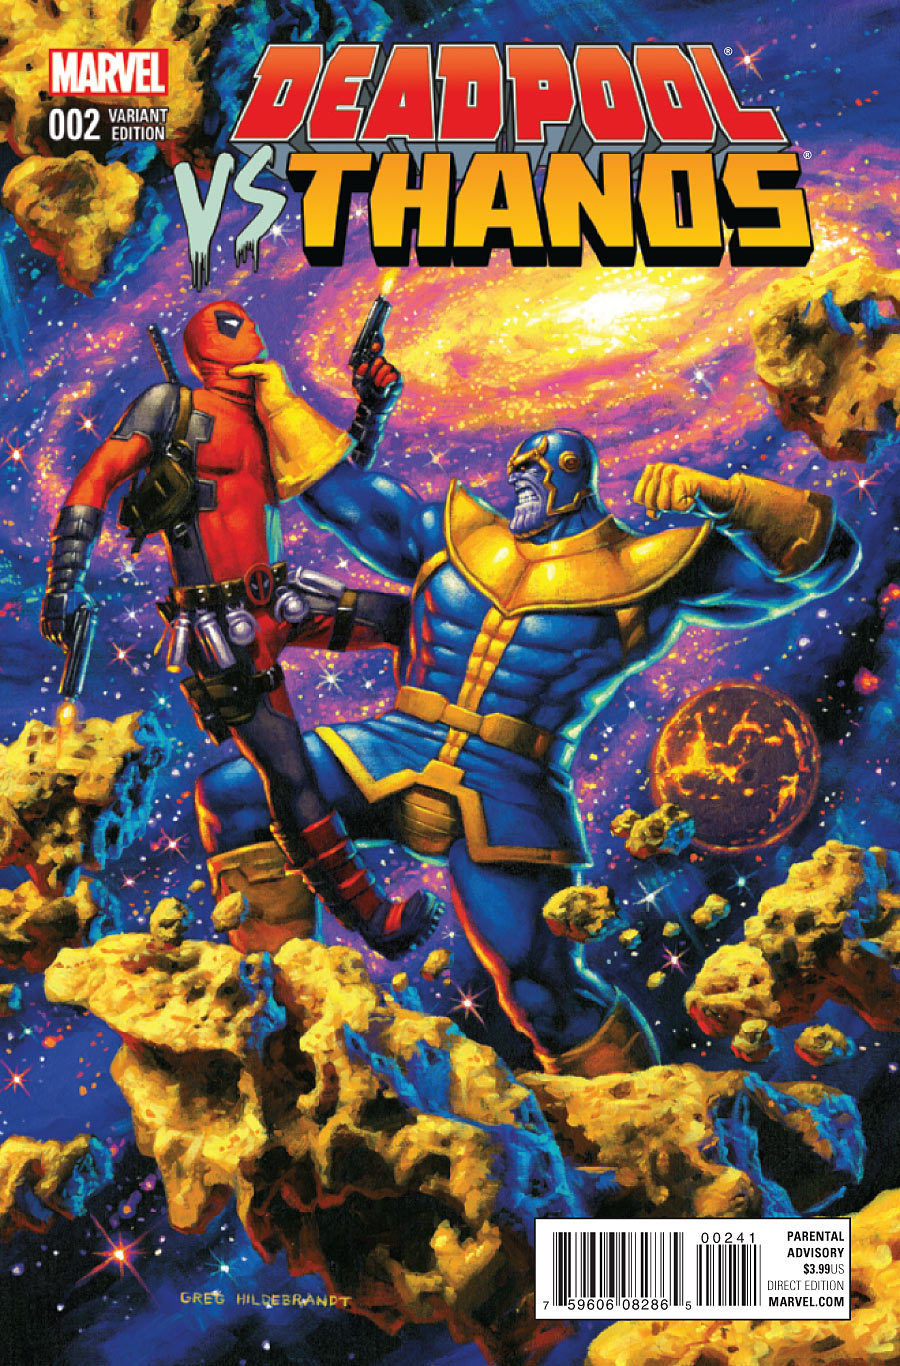 Deadpool Vs. Thanos (2015) #2, cover by Greg Hildebrandt.